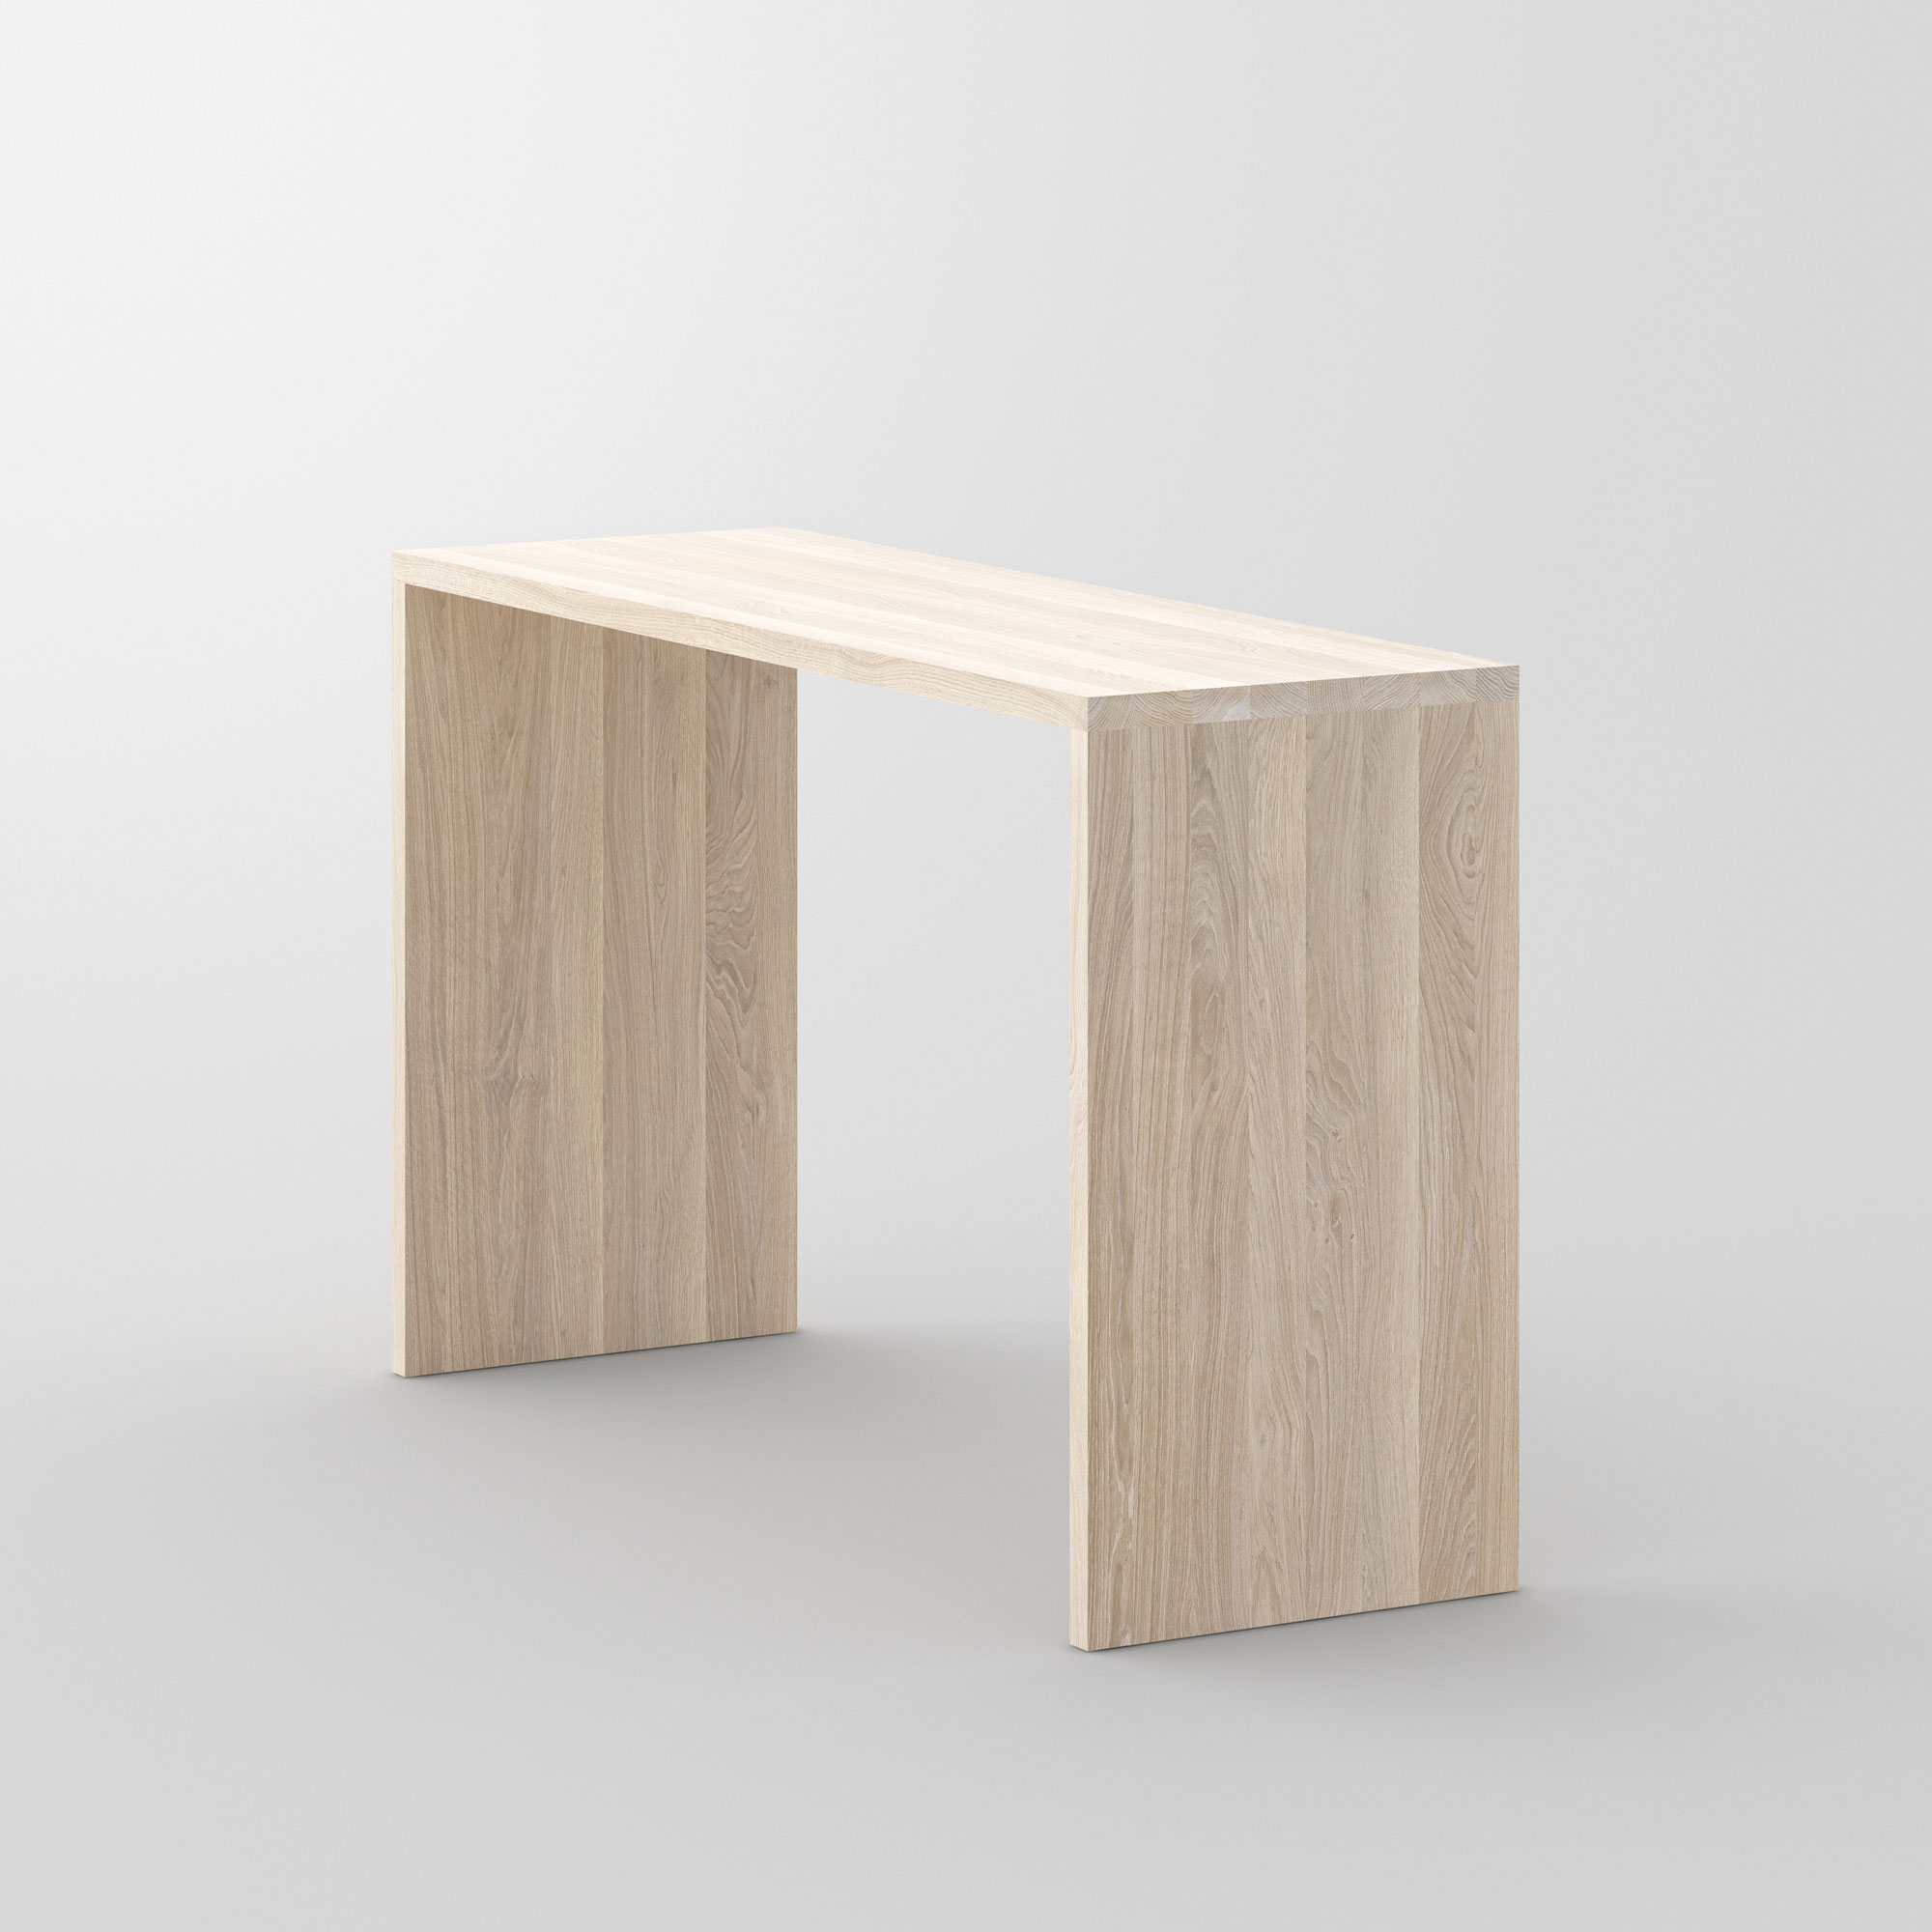 Solid Wood Console Table MENA CONSOLE cam3 custom made in solid wood by vitamin design